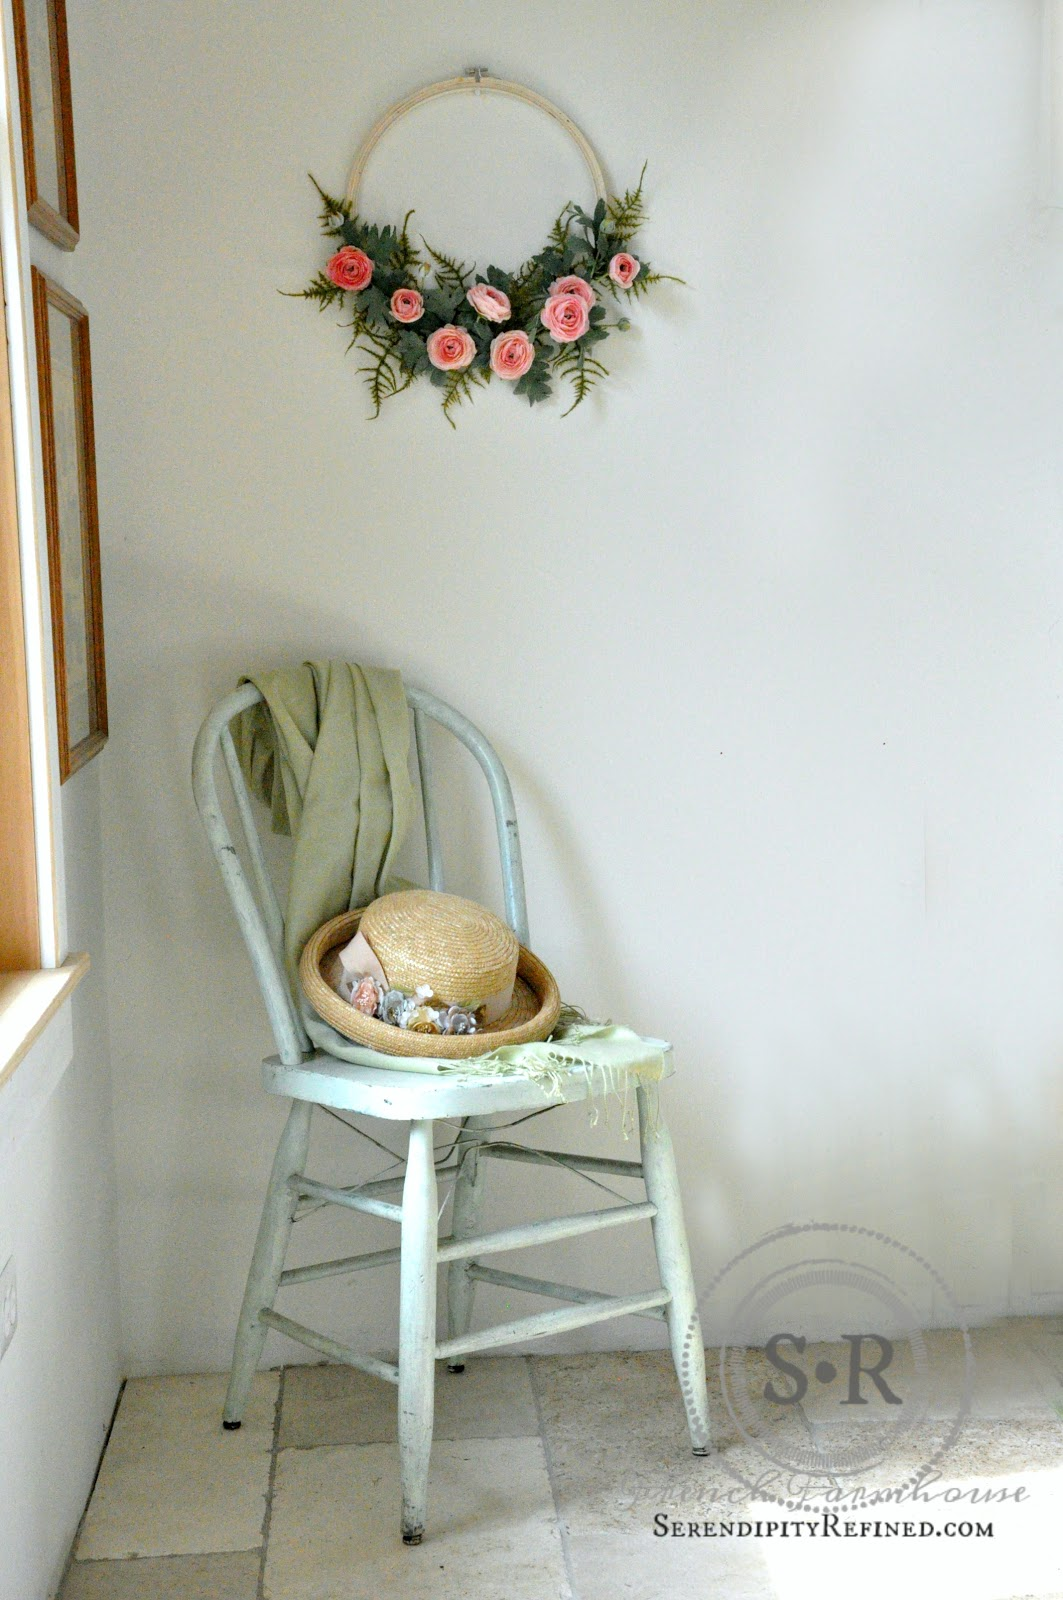 Serendipity refined blog simple minimalist diy spring wreath i hope that youll make one of these simple minimalist diy spring wreaths for yourself i love the ranunculus so much that i may have to go back and pick solutioingenieria Image collections